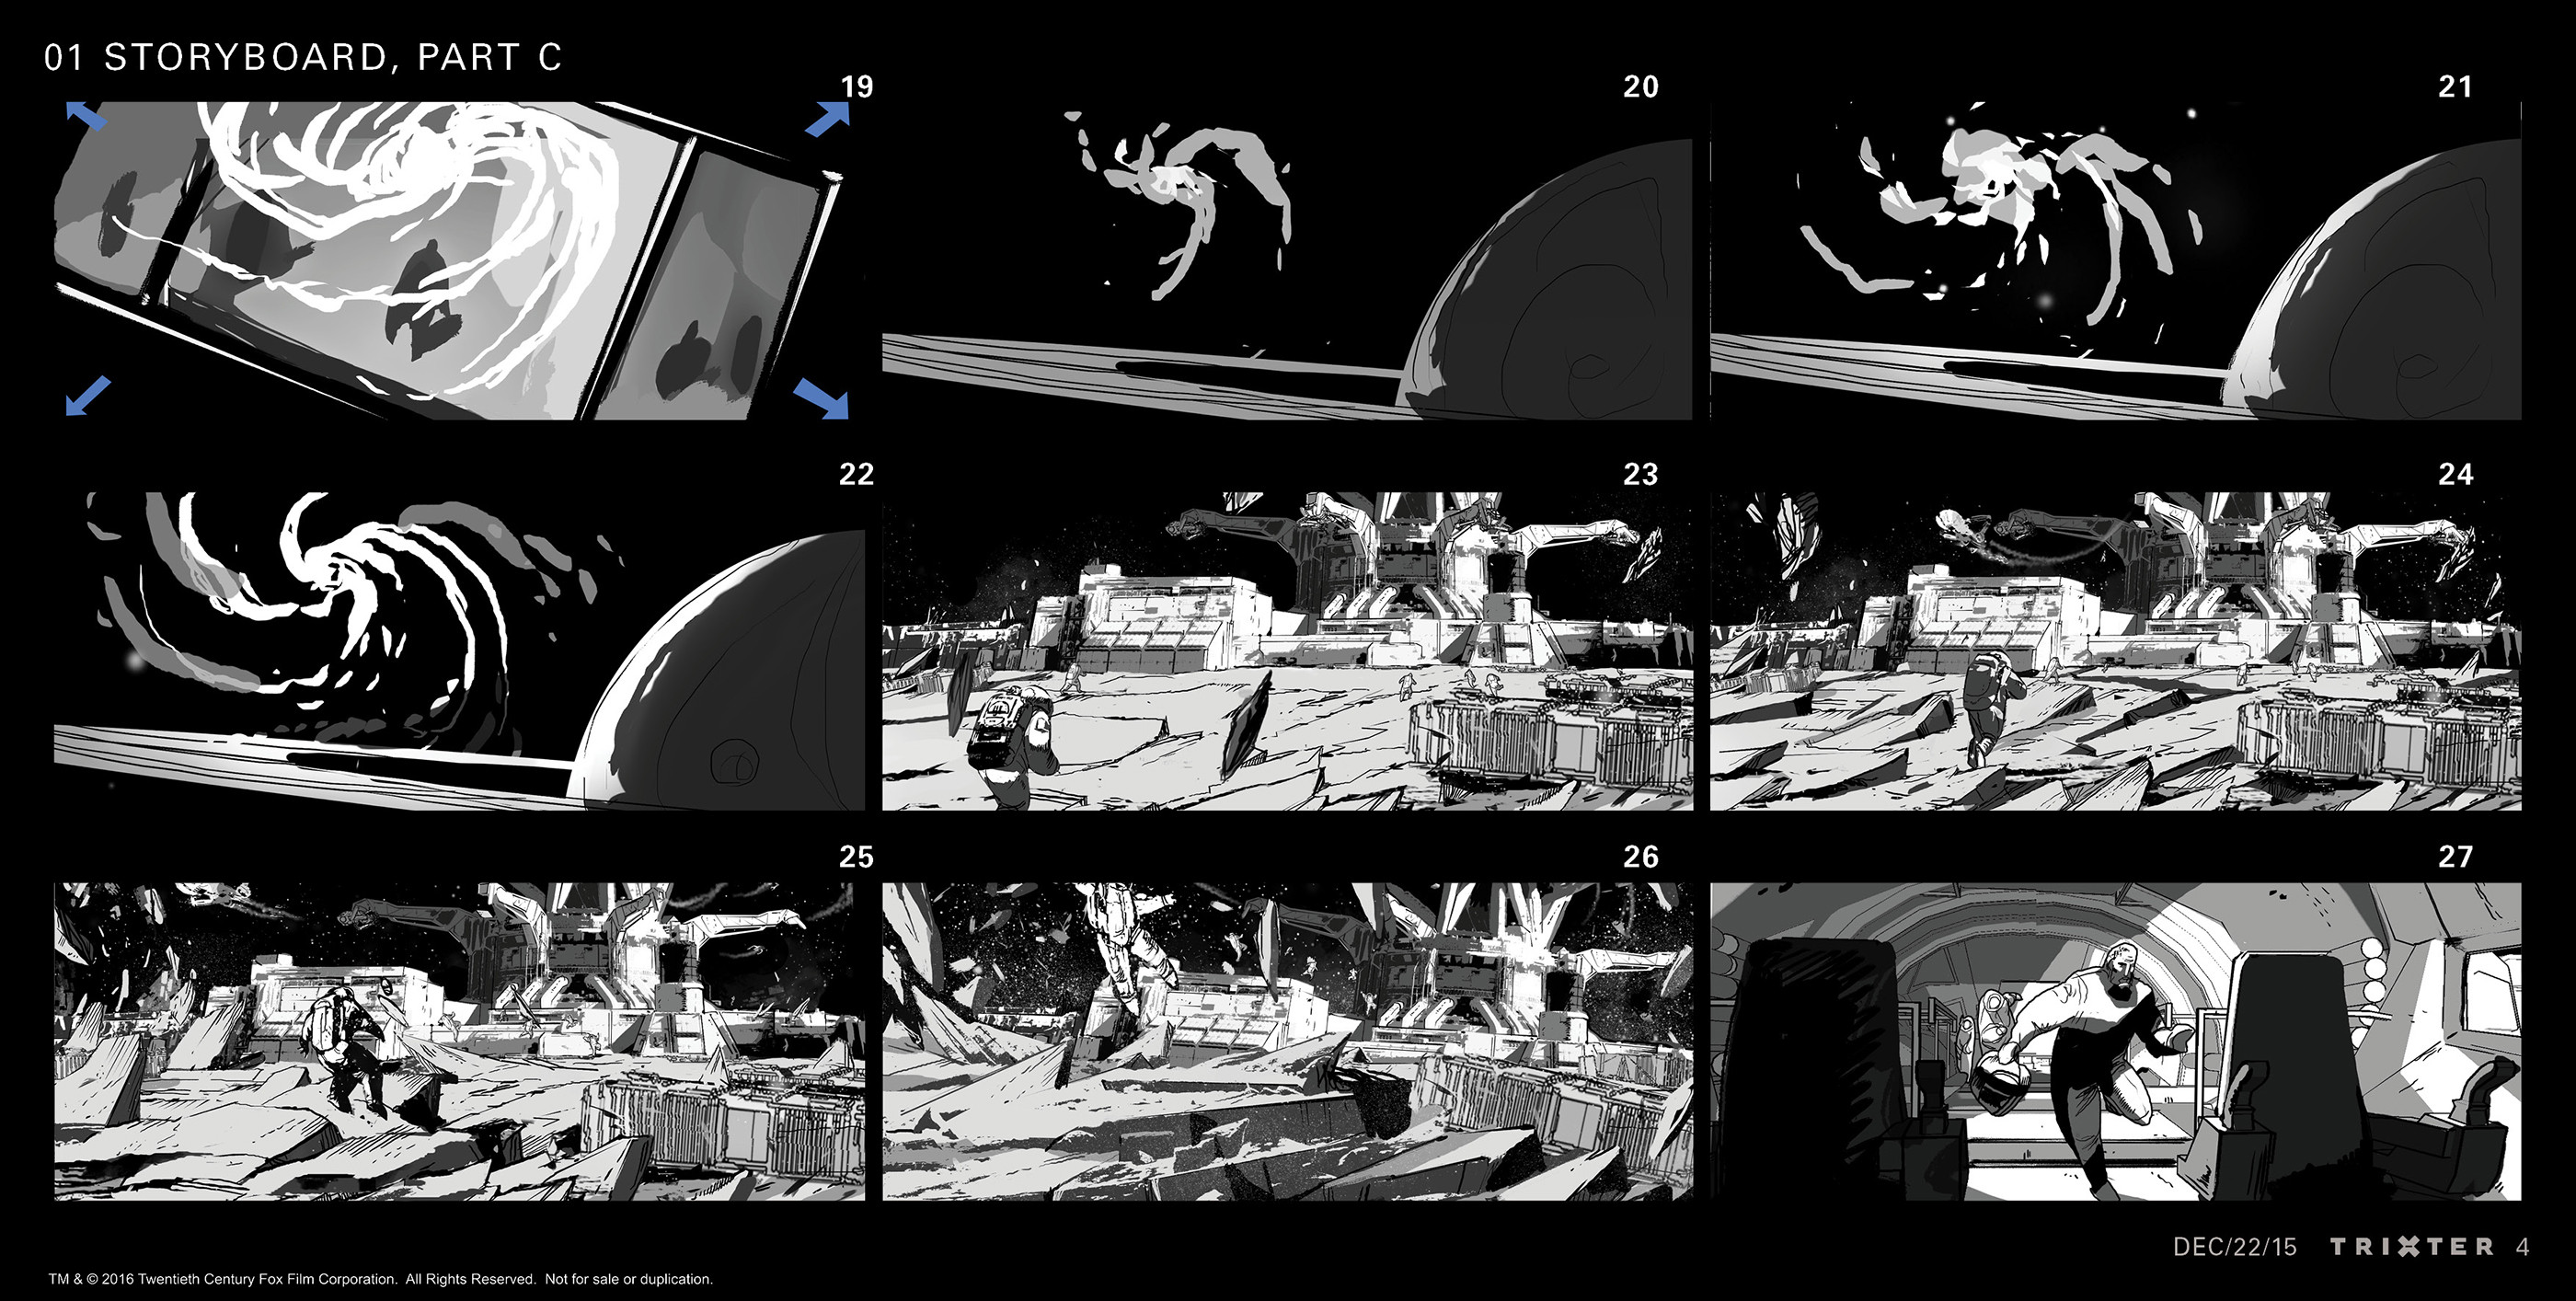 Sequence storyboard: Part 3 of 5